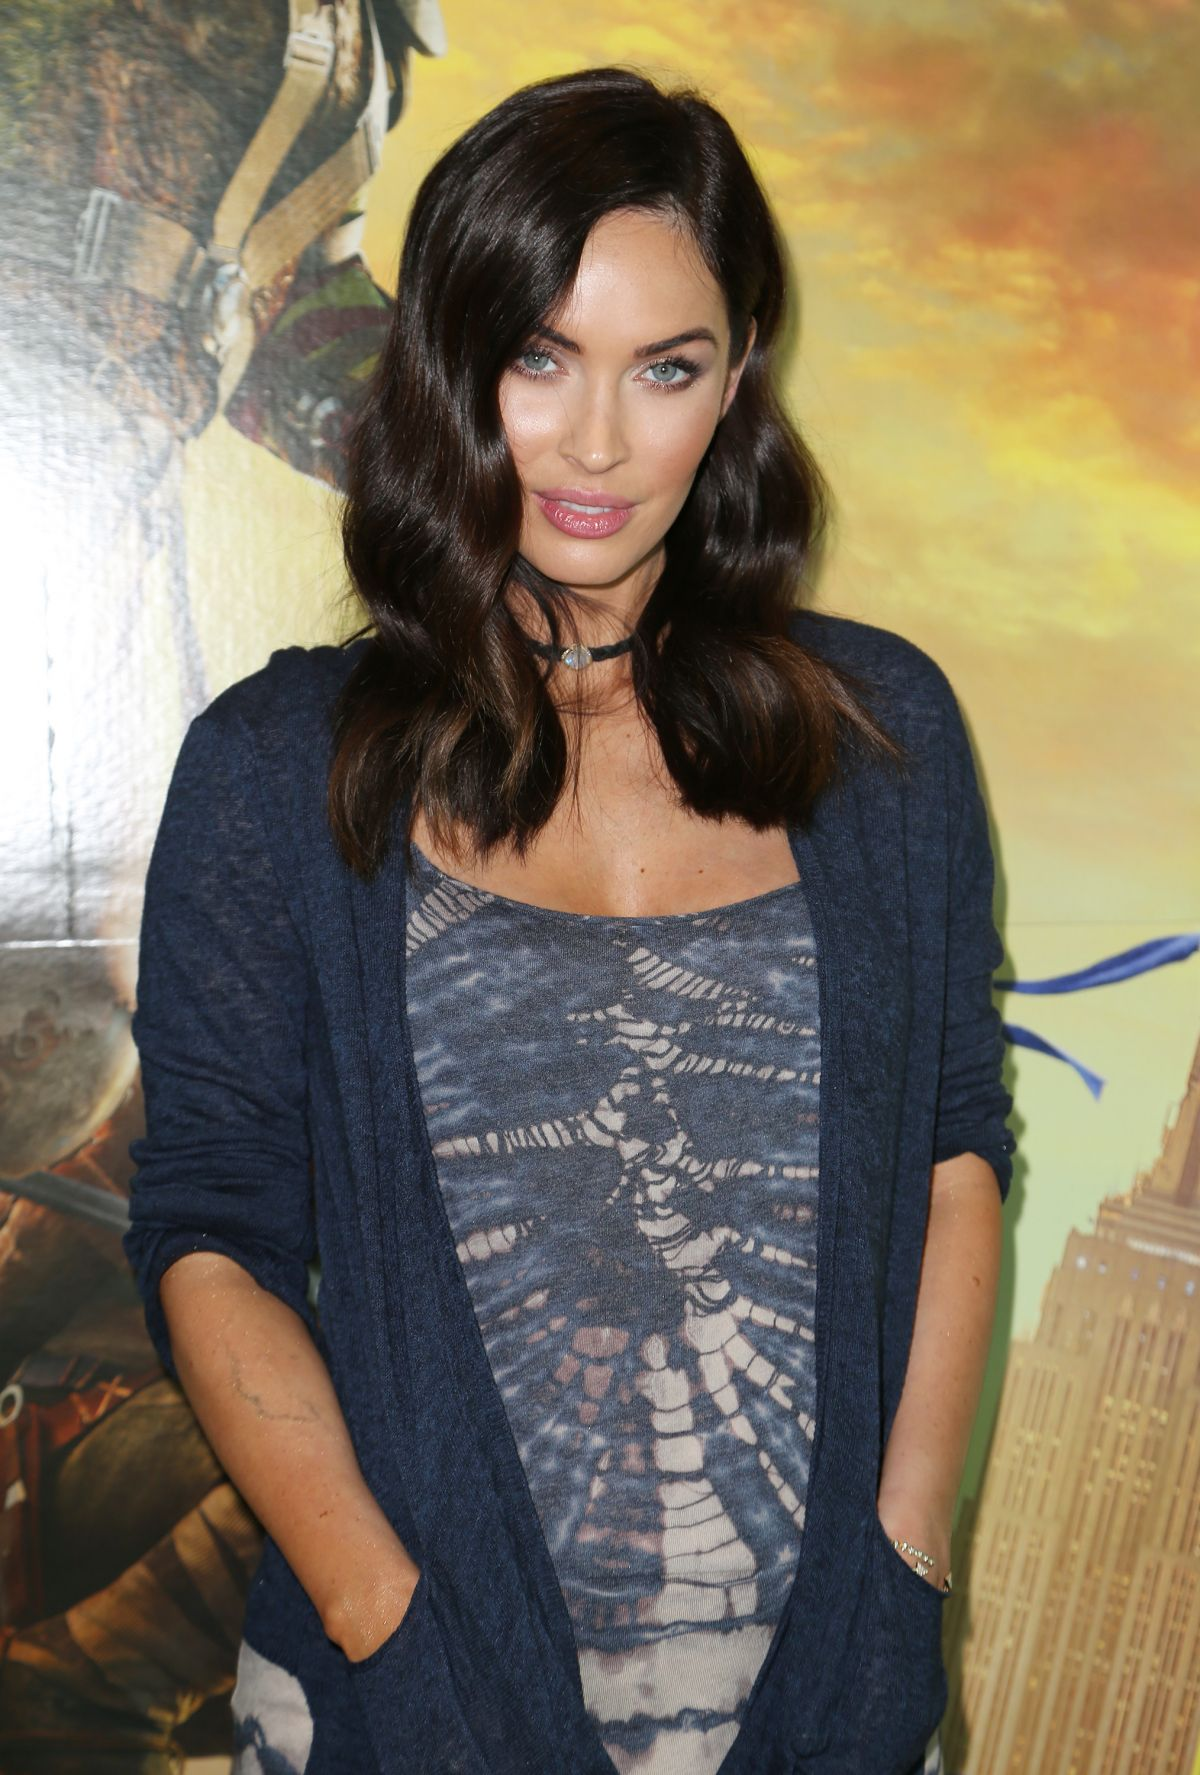 MEGAN FOX at Special Fan Event at Regal Xinemas South Beach in Miami 05/10/2016